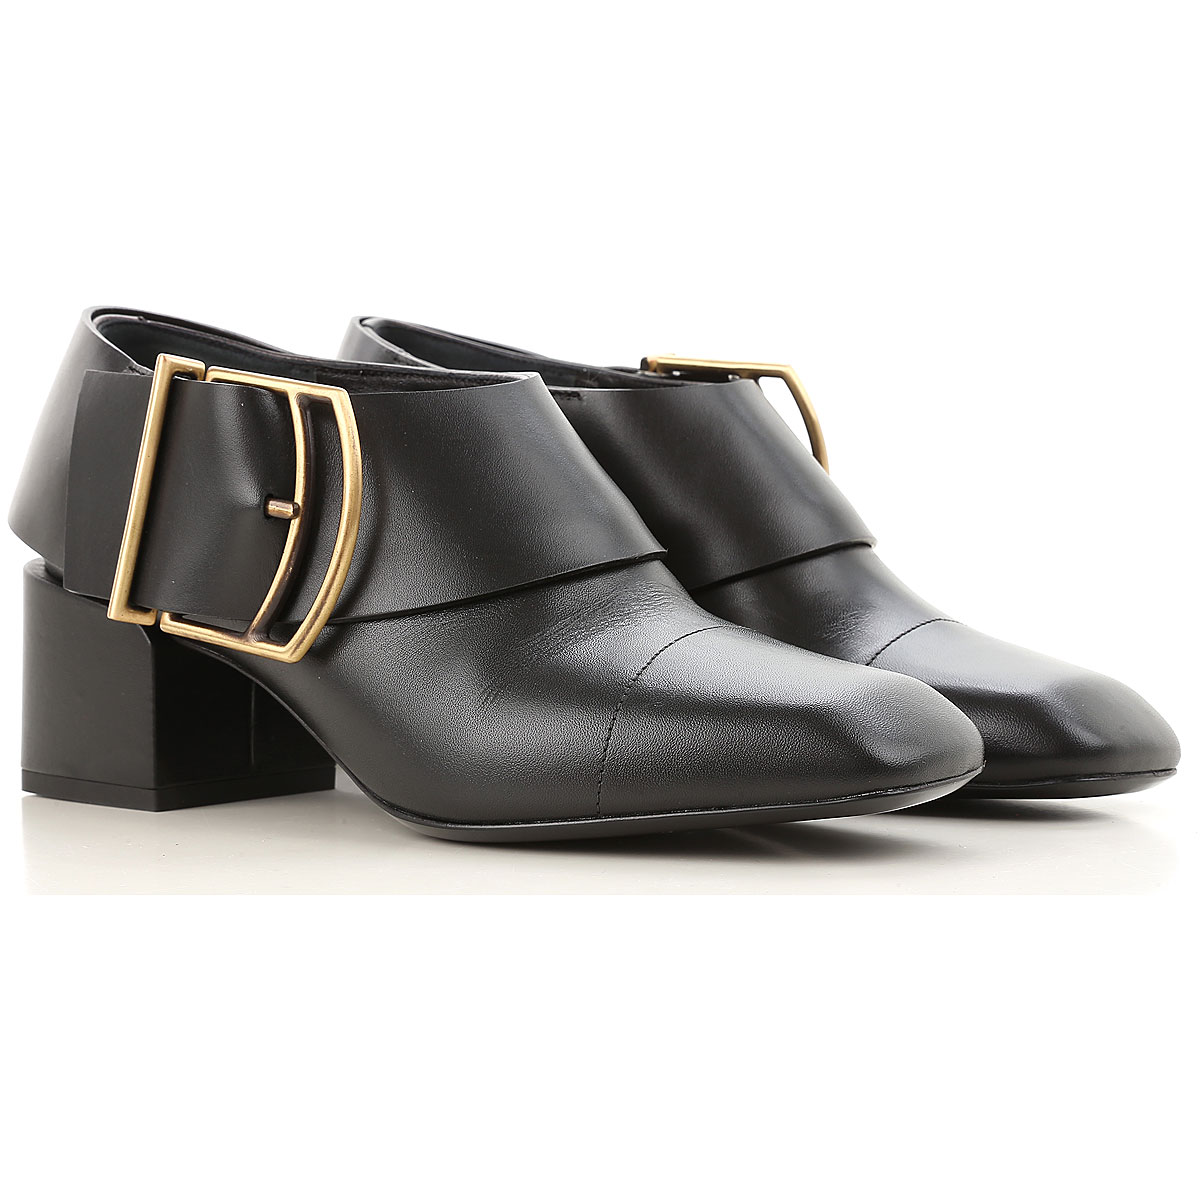 Image of Jil Sander Boots for Women, Booties On Sale in Outlet, Black, Leather, 2017, 6 8